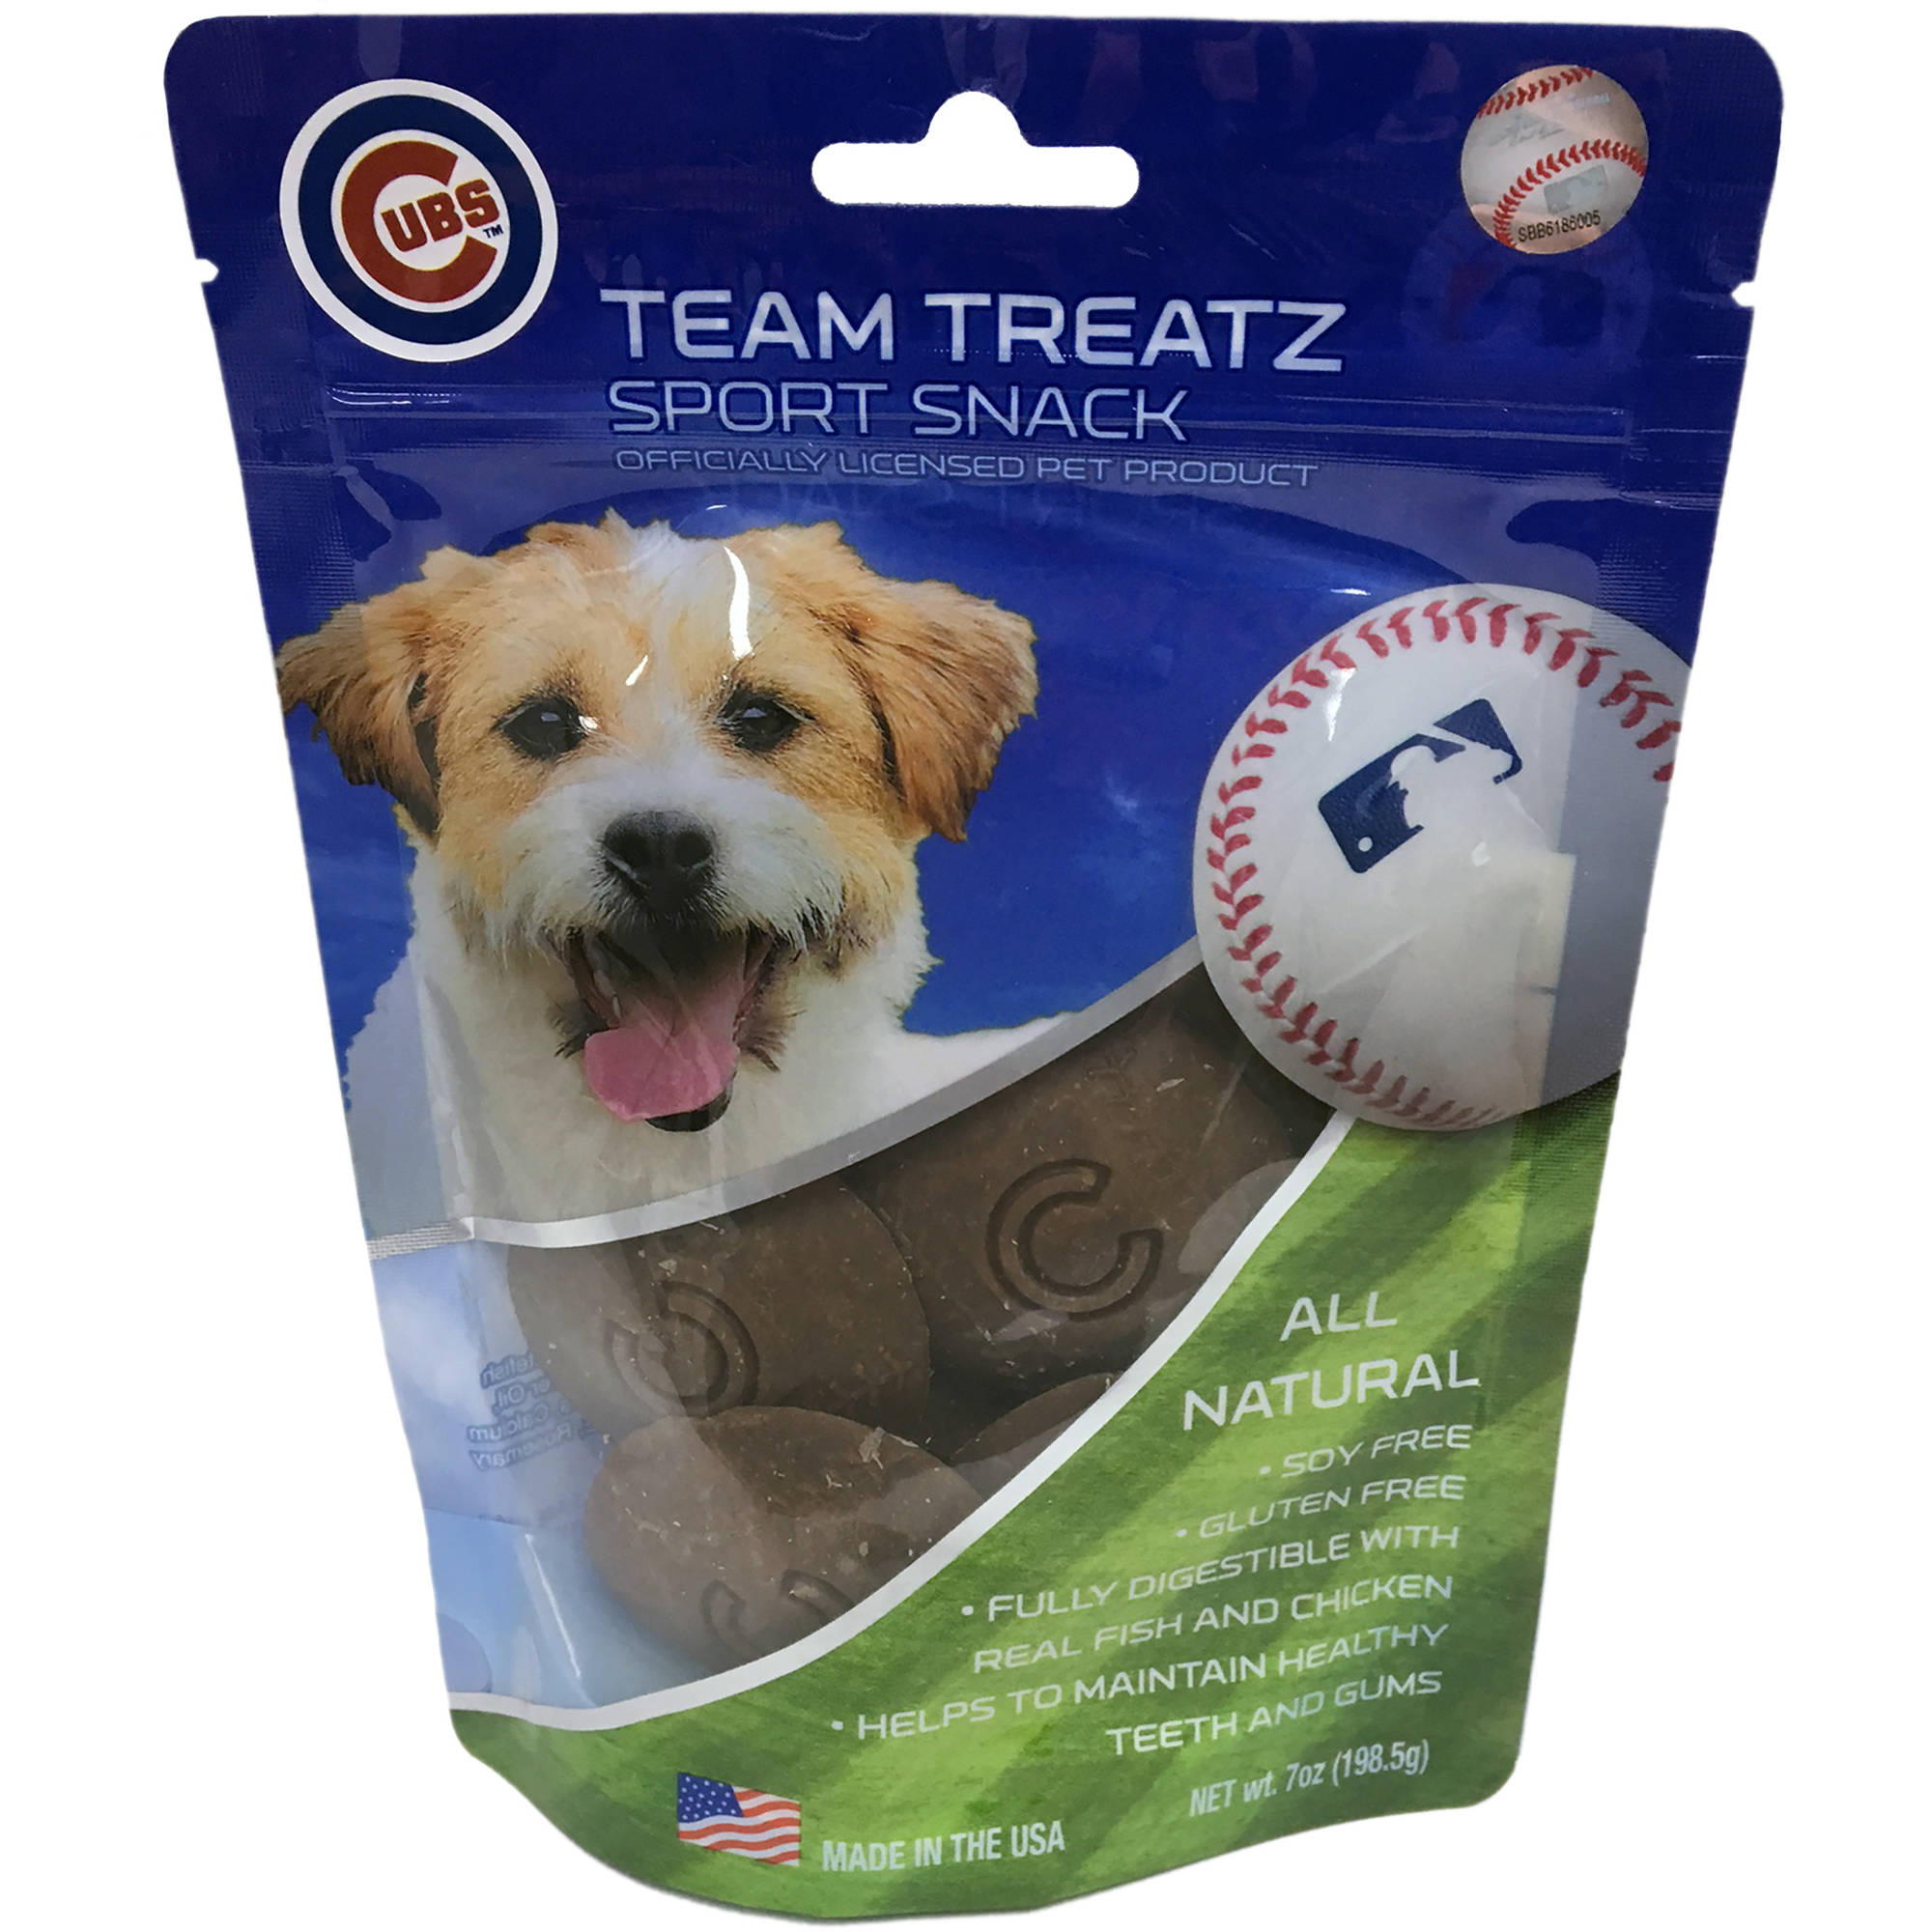 Pets First MLB Chicago Cubs Baseball Dog Treats, Delicious Cookies for Dogs, Baseball Reward for the Sporty PUP